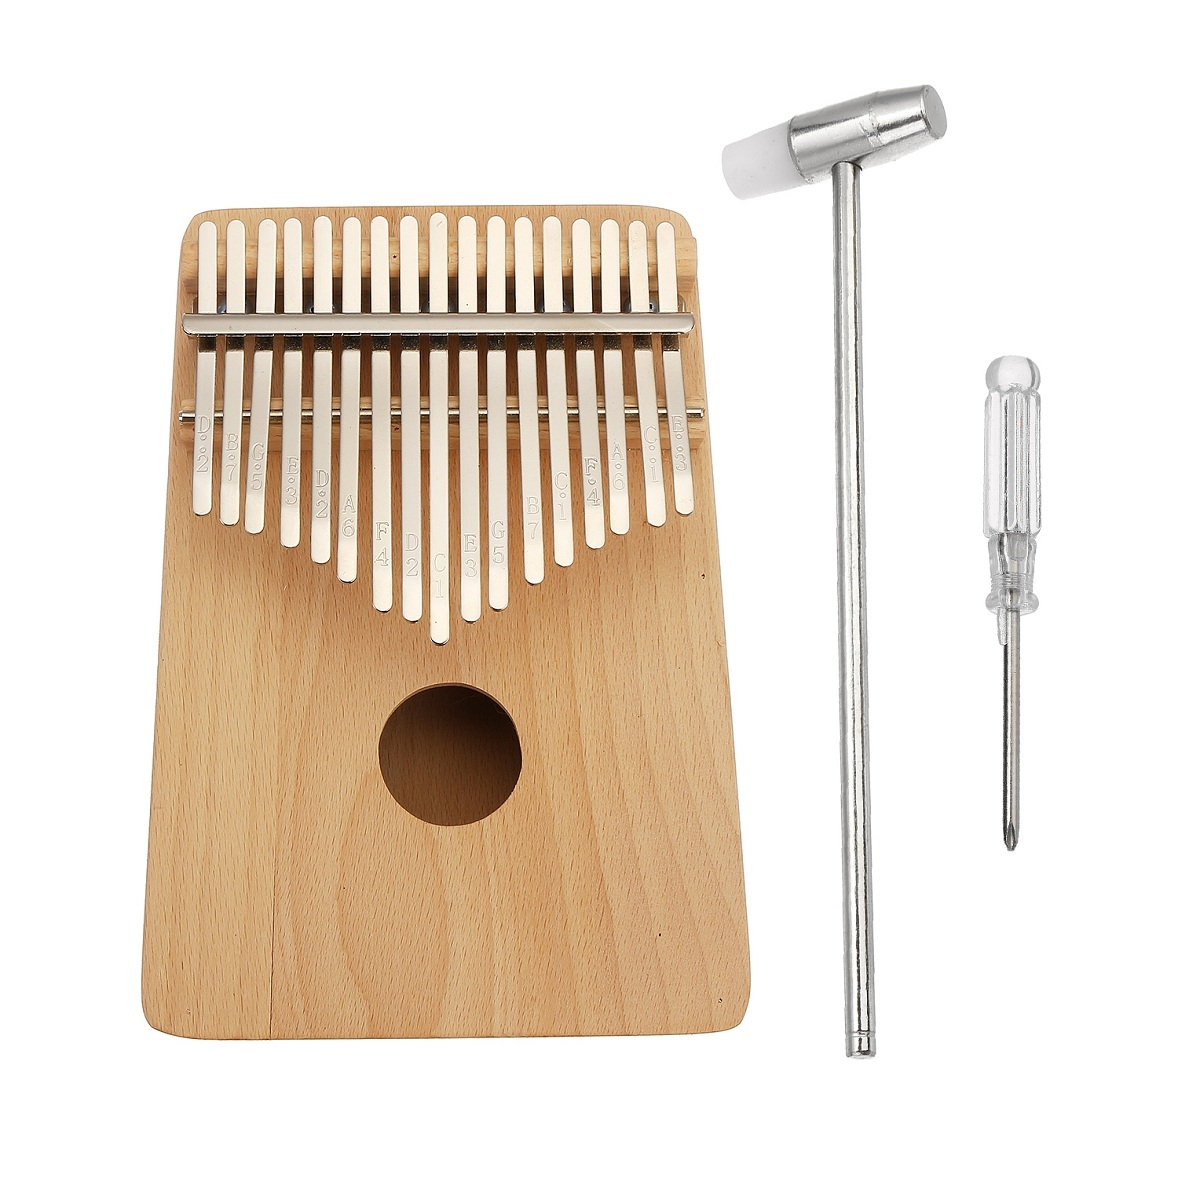 17 Keys DIY Painting Pine Wood Beechwood Kalimbas Thumb Piano Finger Percussion with Tuning Hammer